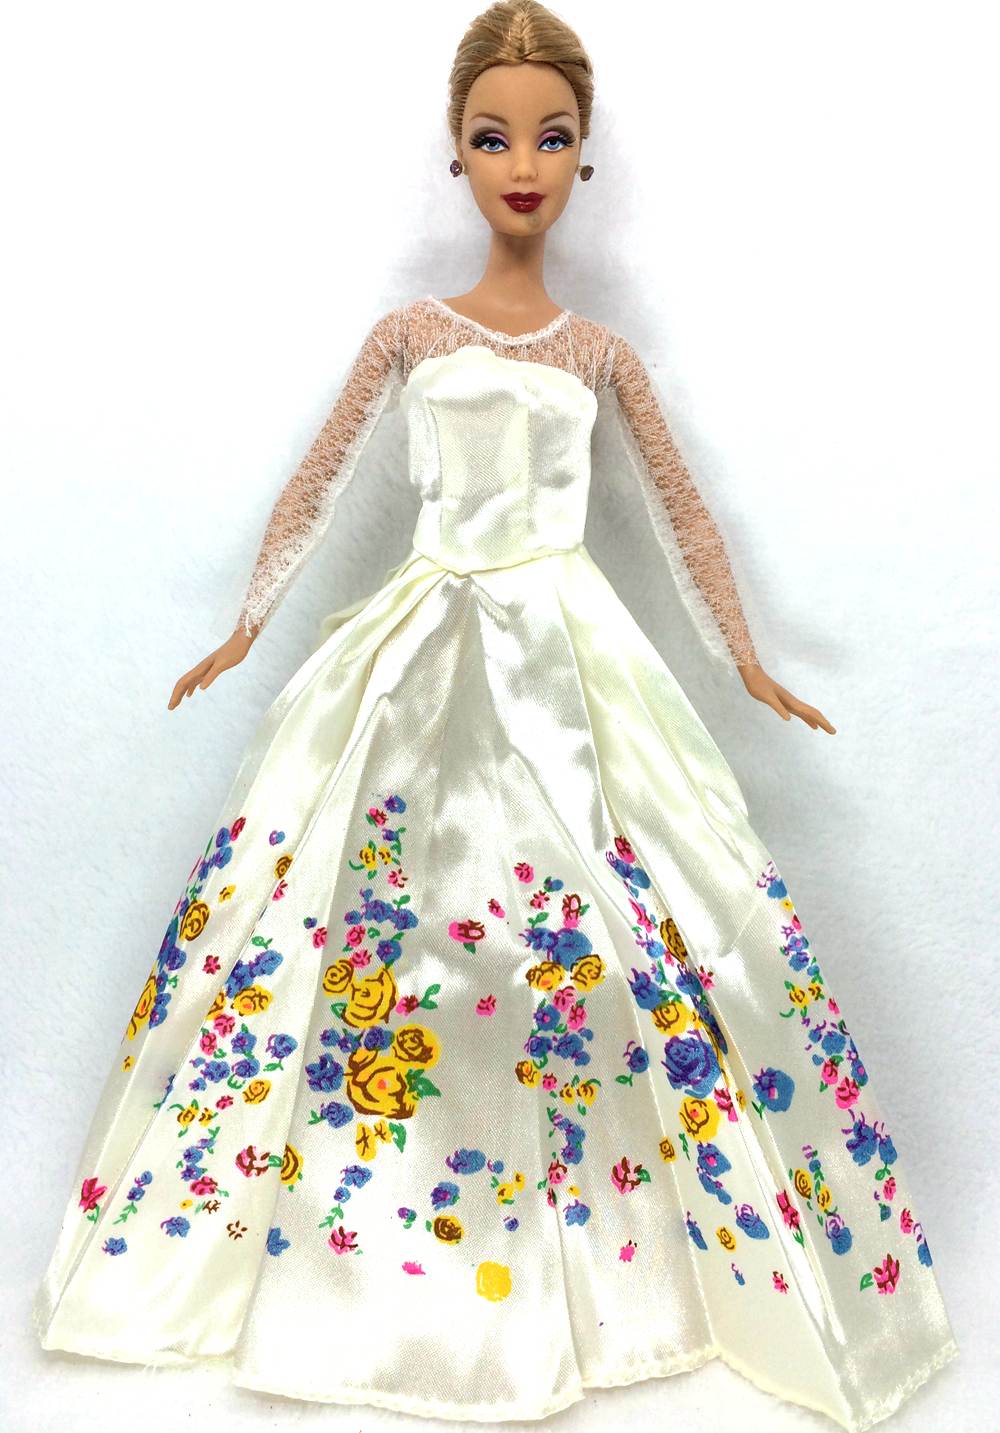 fairy tale cinderella wedding dress gown party outfit for barbie doll